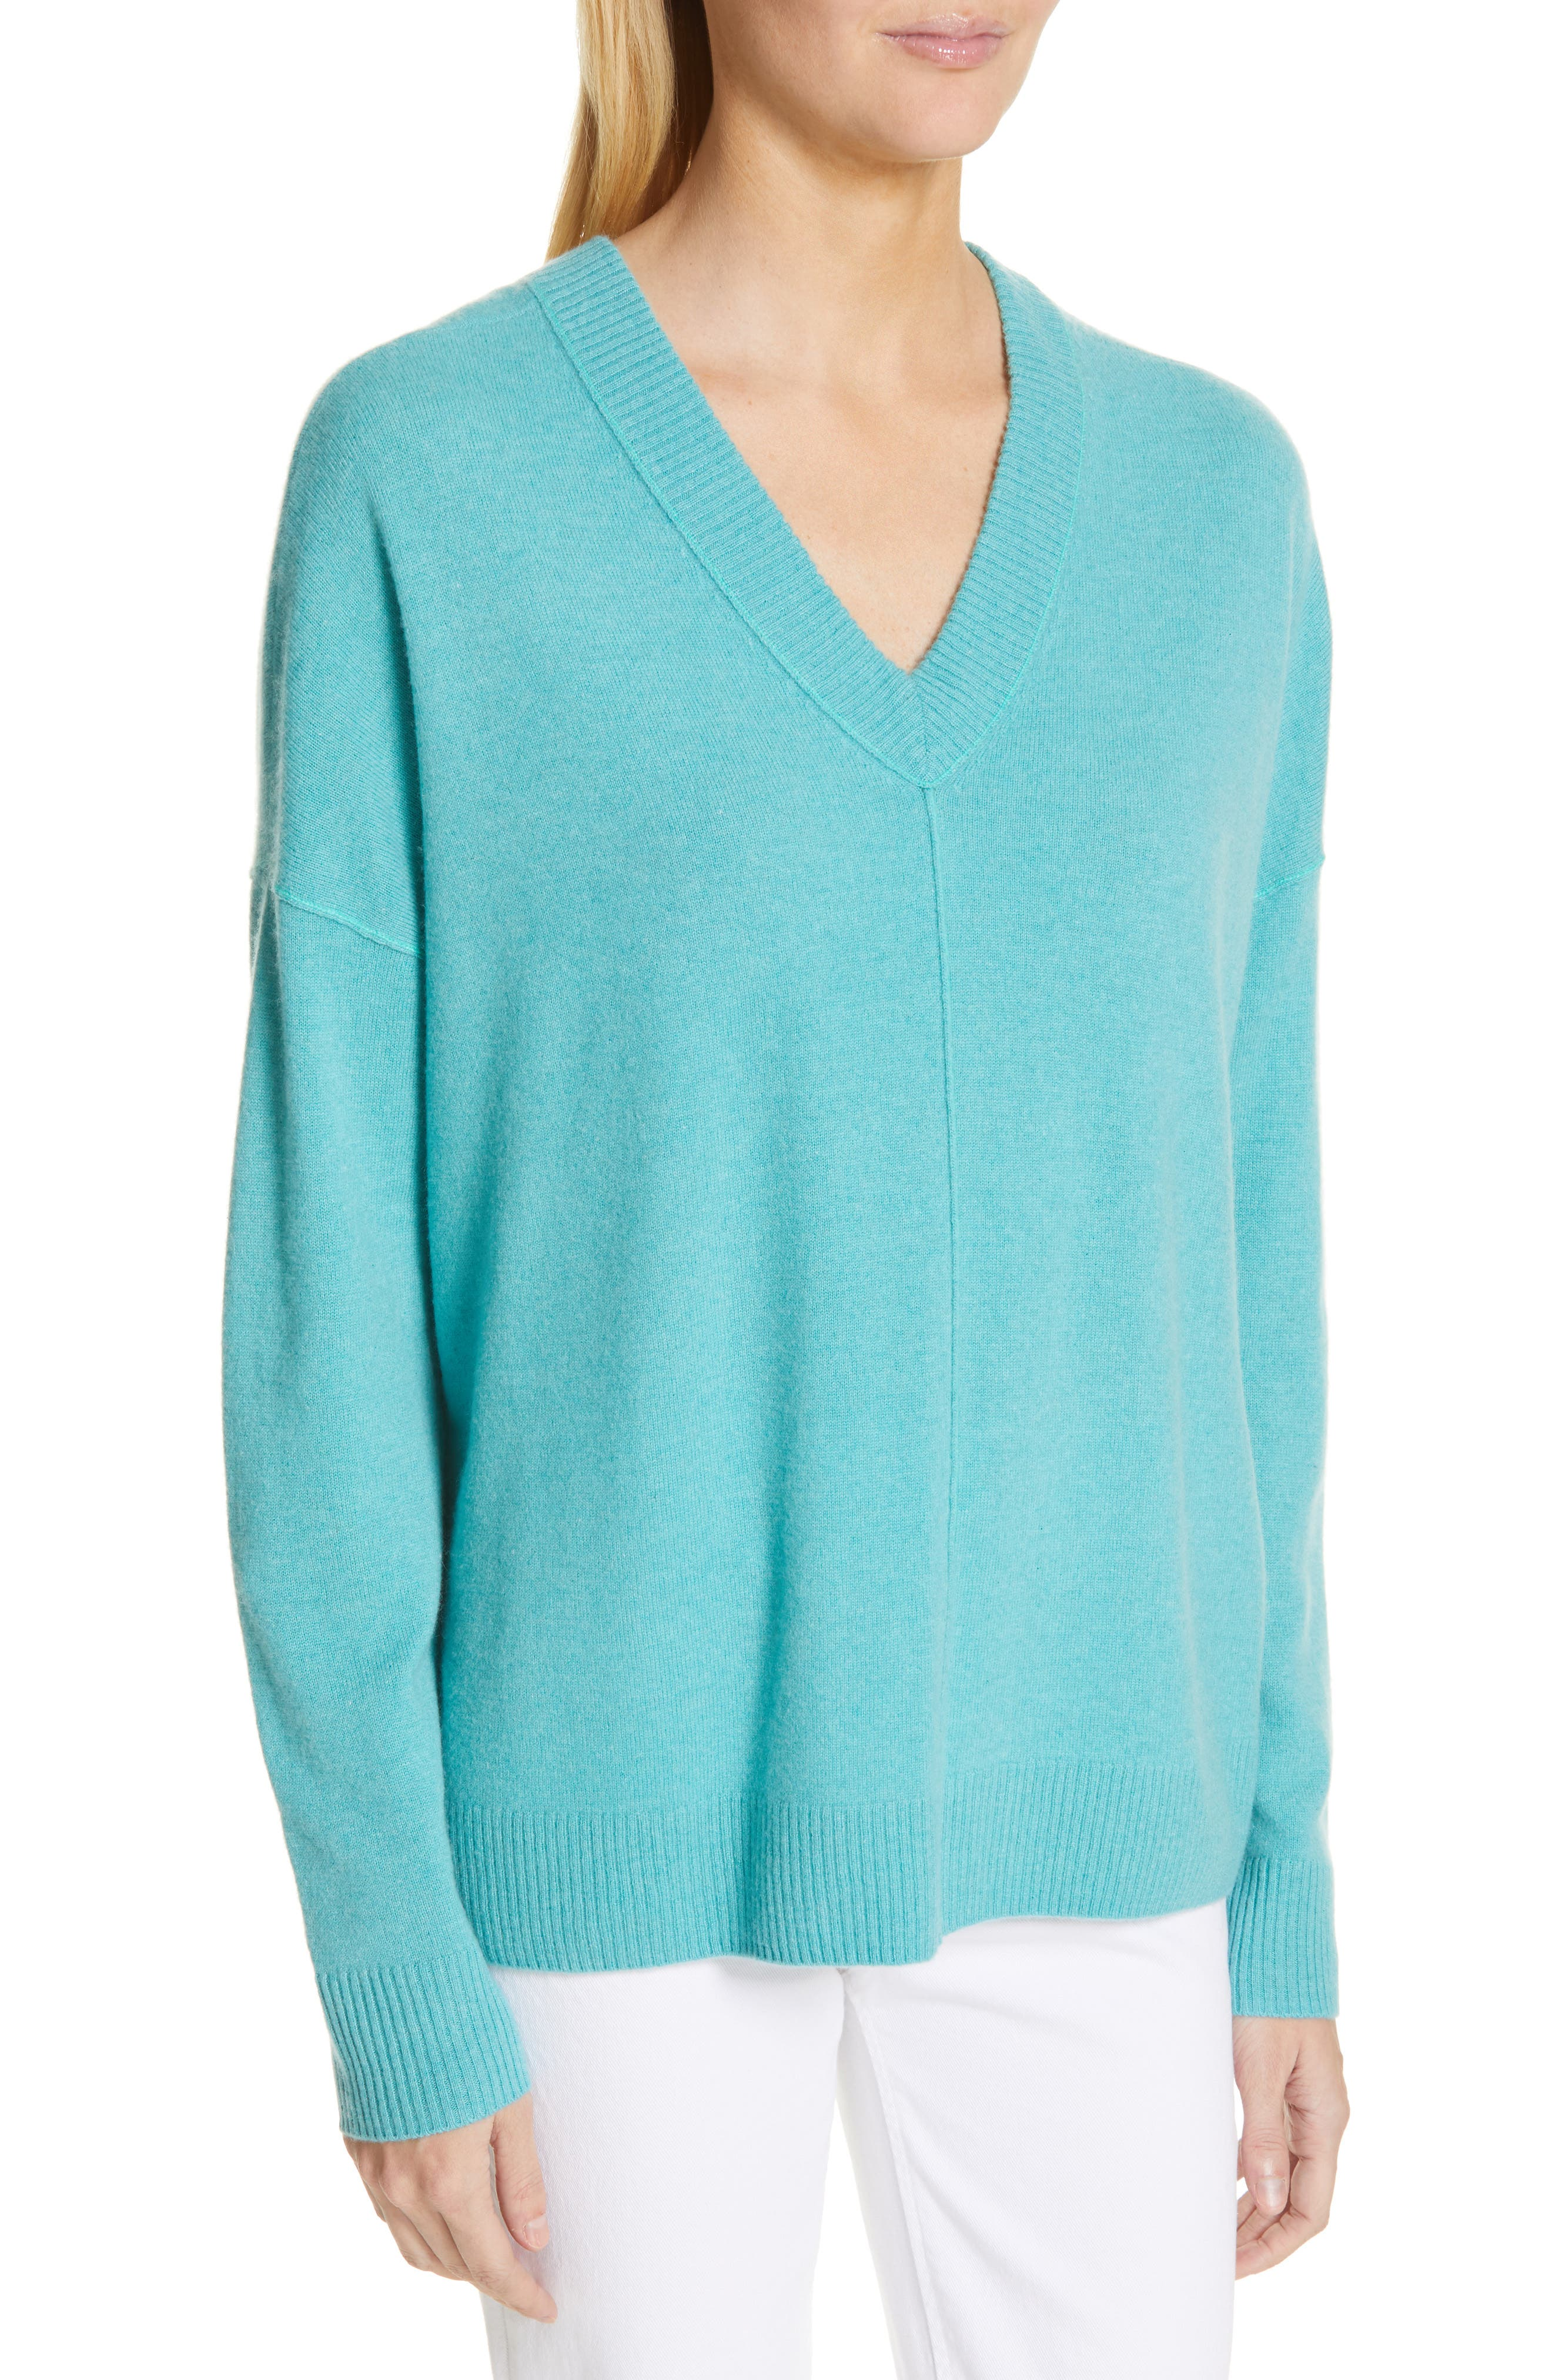 NORDSTROM SIGNATURE, Cashmere Double V-Neck Pullover, Alternate thumbnail 4, color, TEAL PORCELAIN